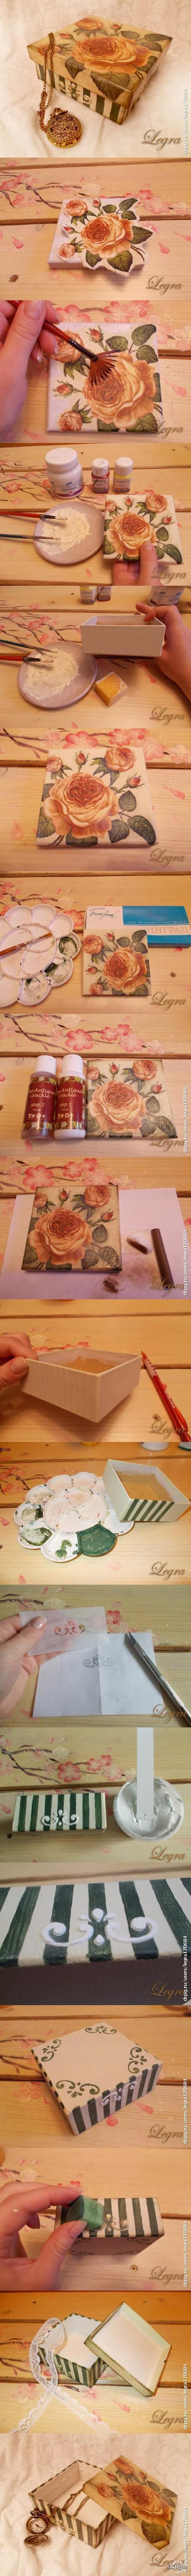 895 best diy projects images on pinterest crafts colors and do decoupage box decoupage tutorial handmade home decor arts crafts pin pin country cottages do it yourself napkins hobbies solutioingenieria Images